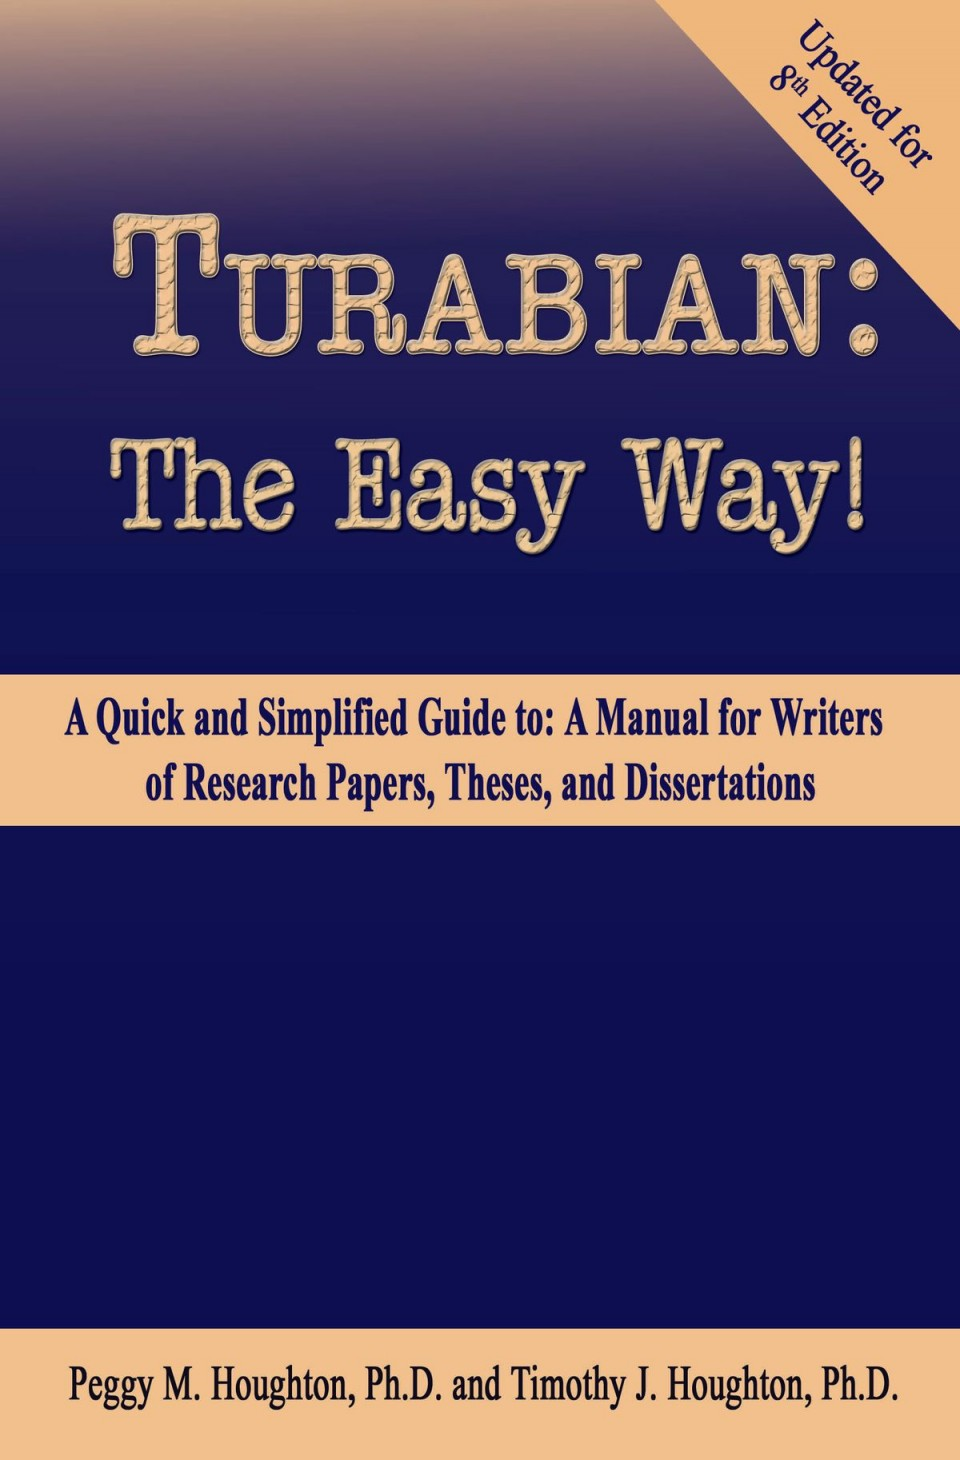 018 Research Paper Turabian The Easy Way For 8th Edition Manual Writers Of Papers Theses And Amazing A Dissertations Pdf 960